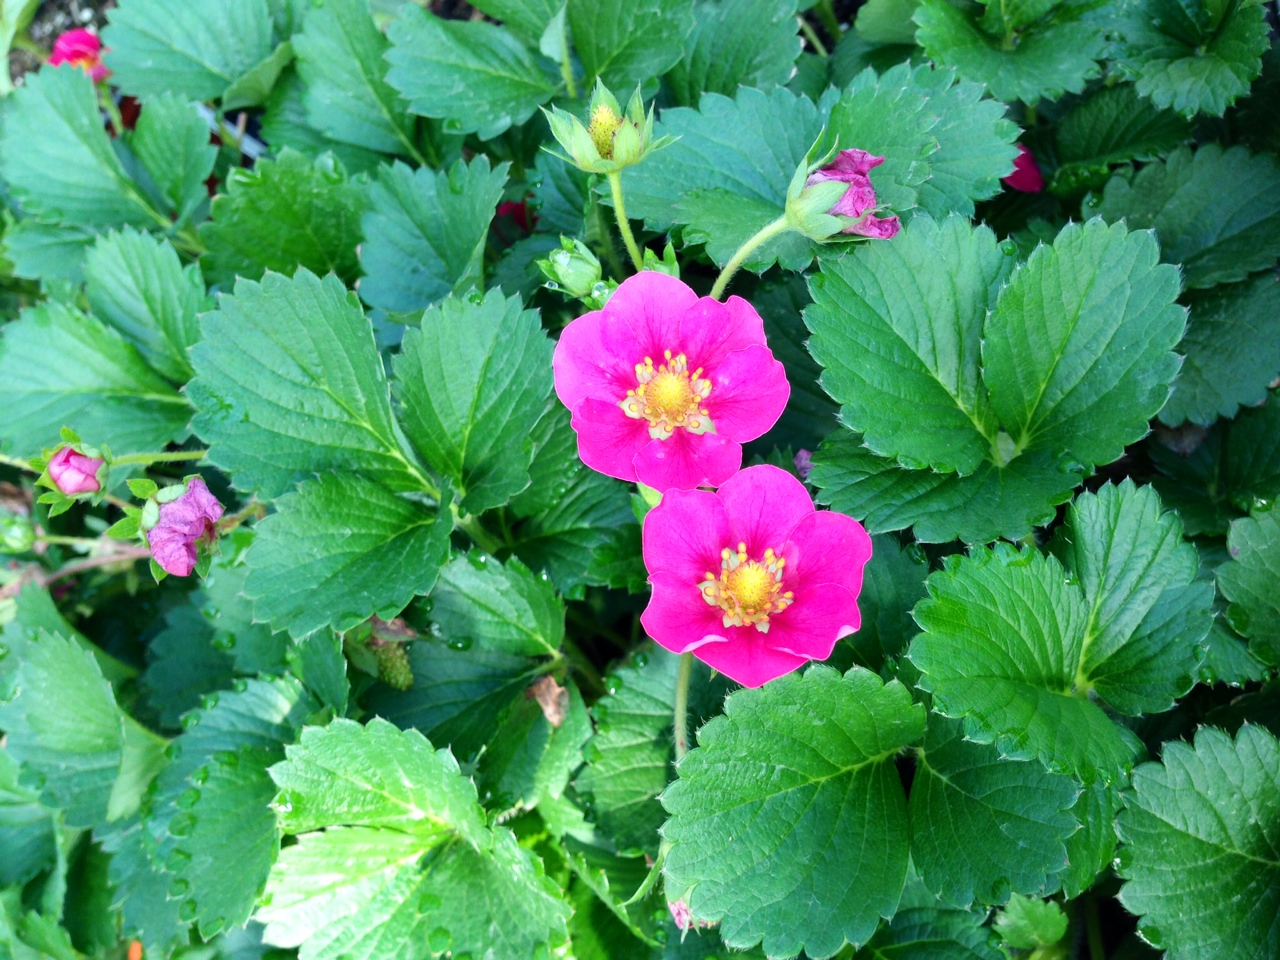 'Tristan,' a pink-blooming strawberry variety, is a colorful, edible groundcover.